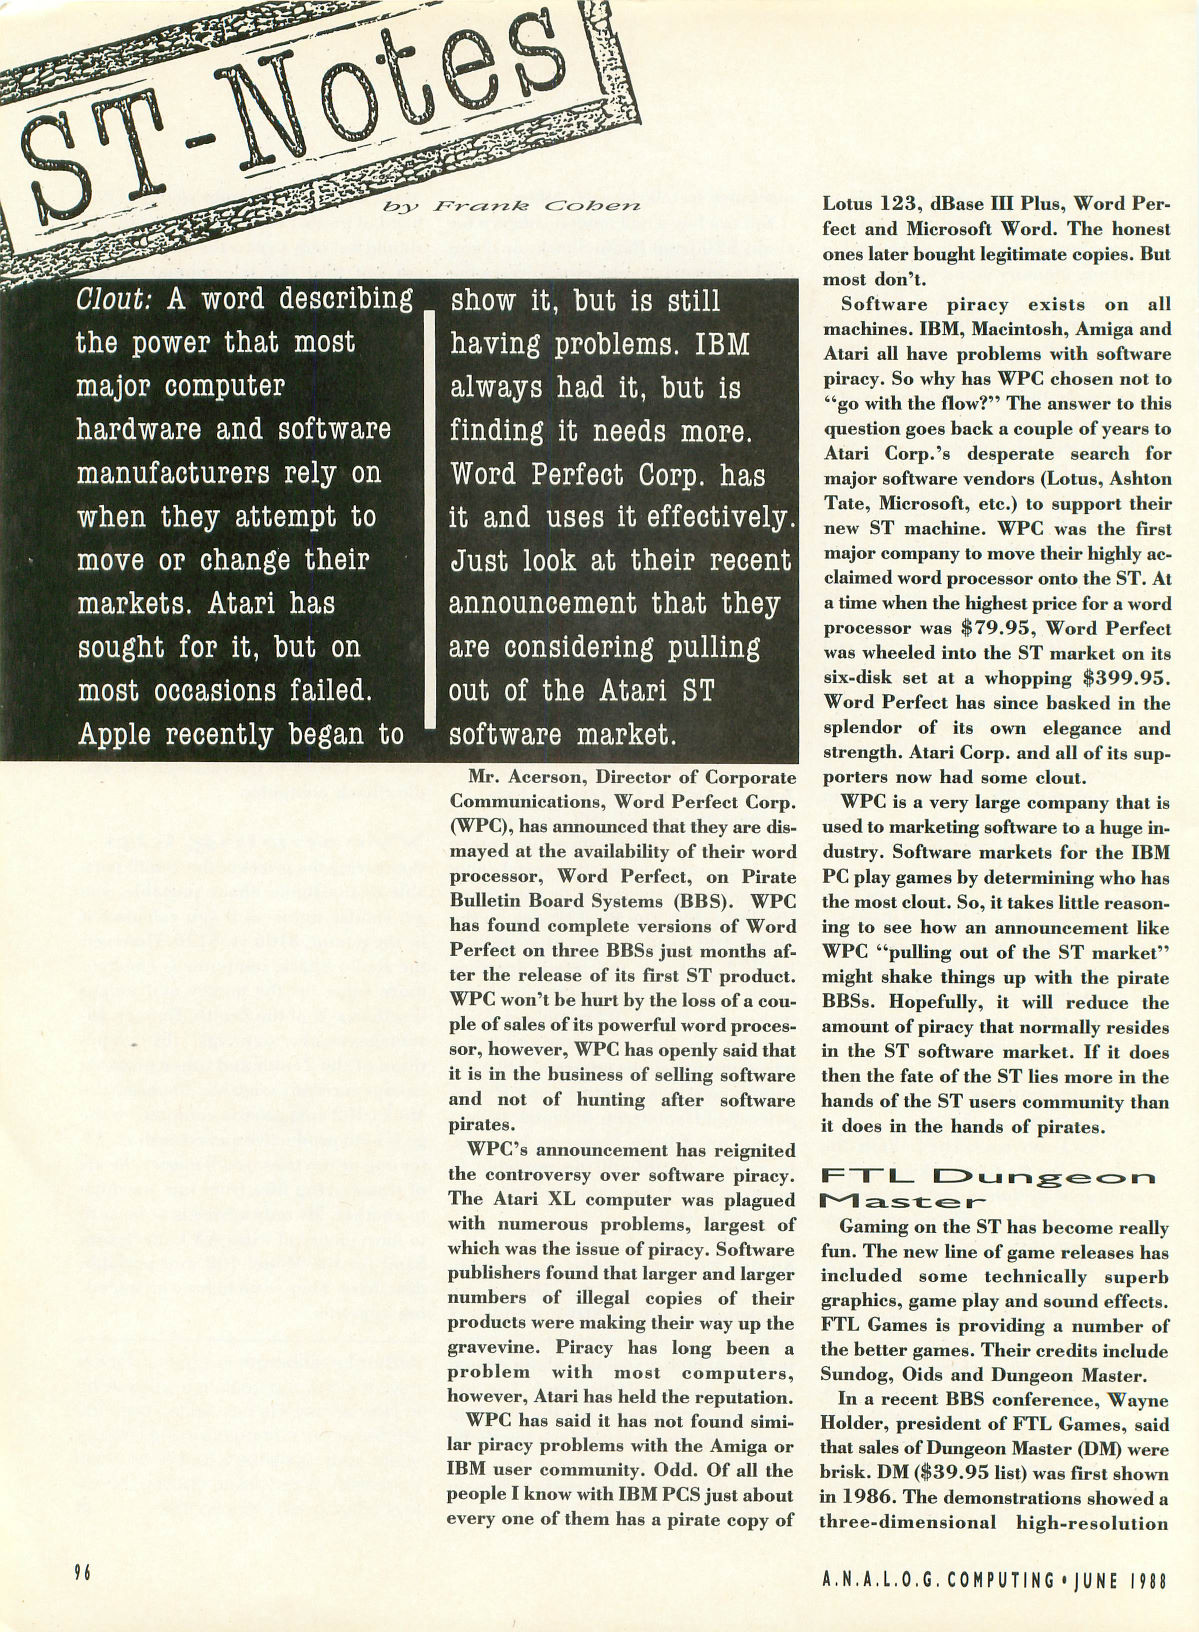 Dungeon Master for Atari ST Article published in American magazine 'Analog Computing', Issue #61 June 1988, Page 96